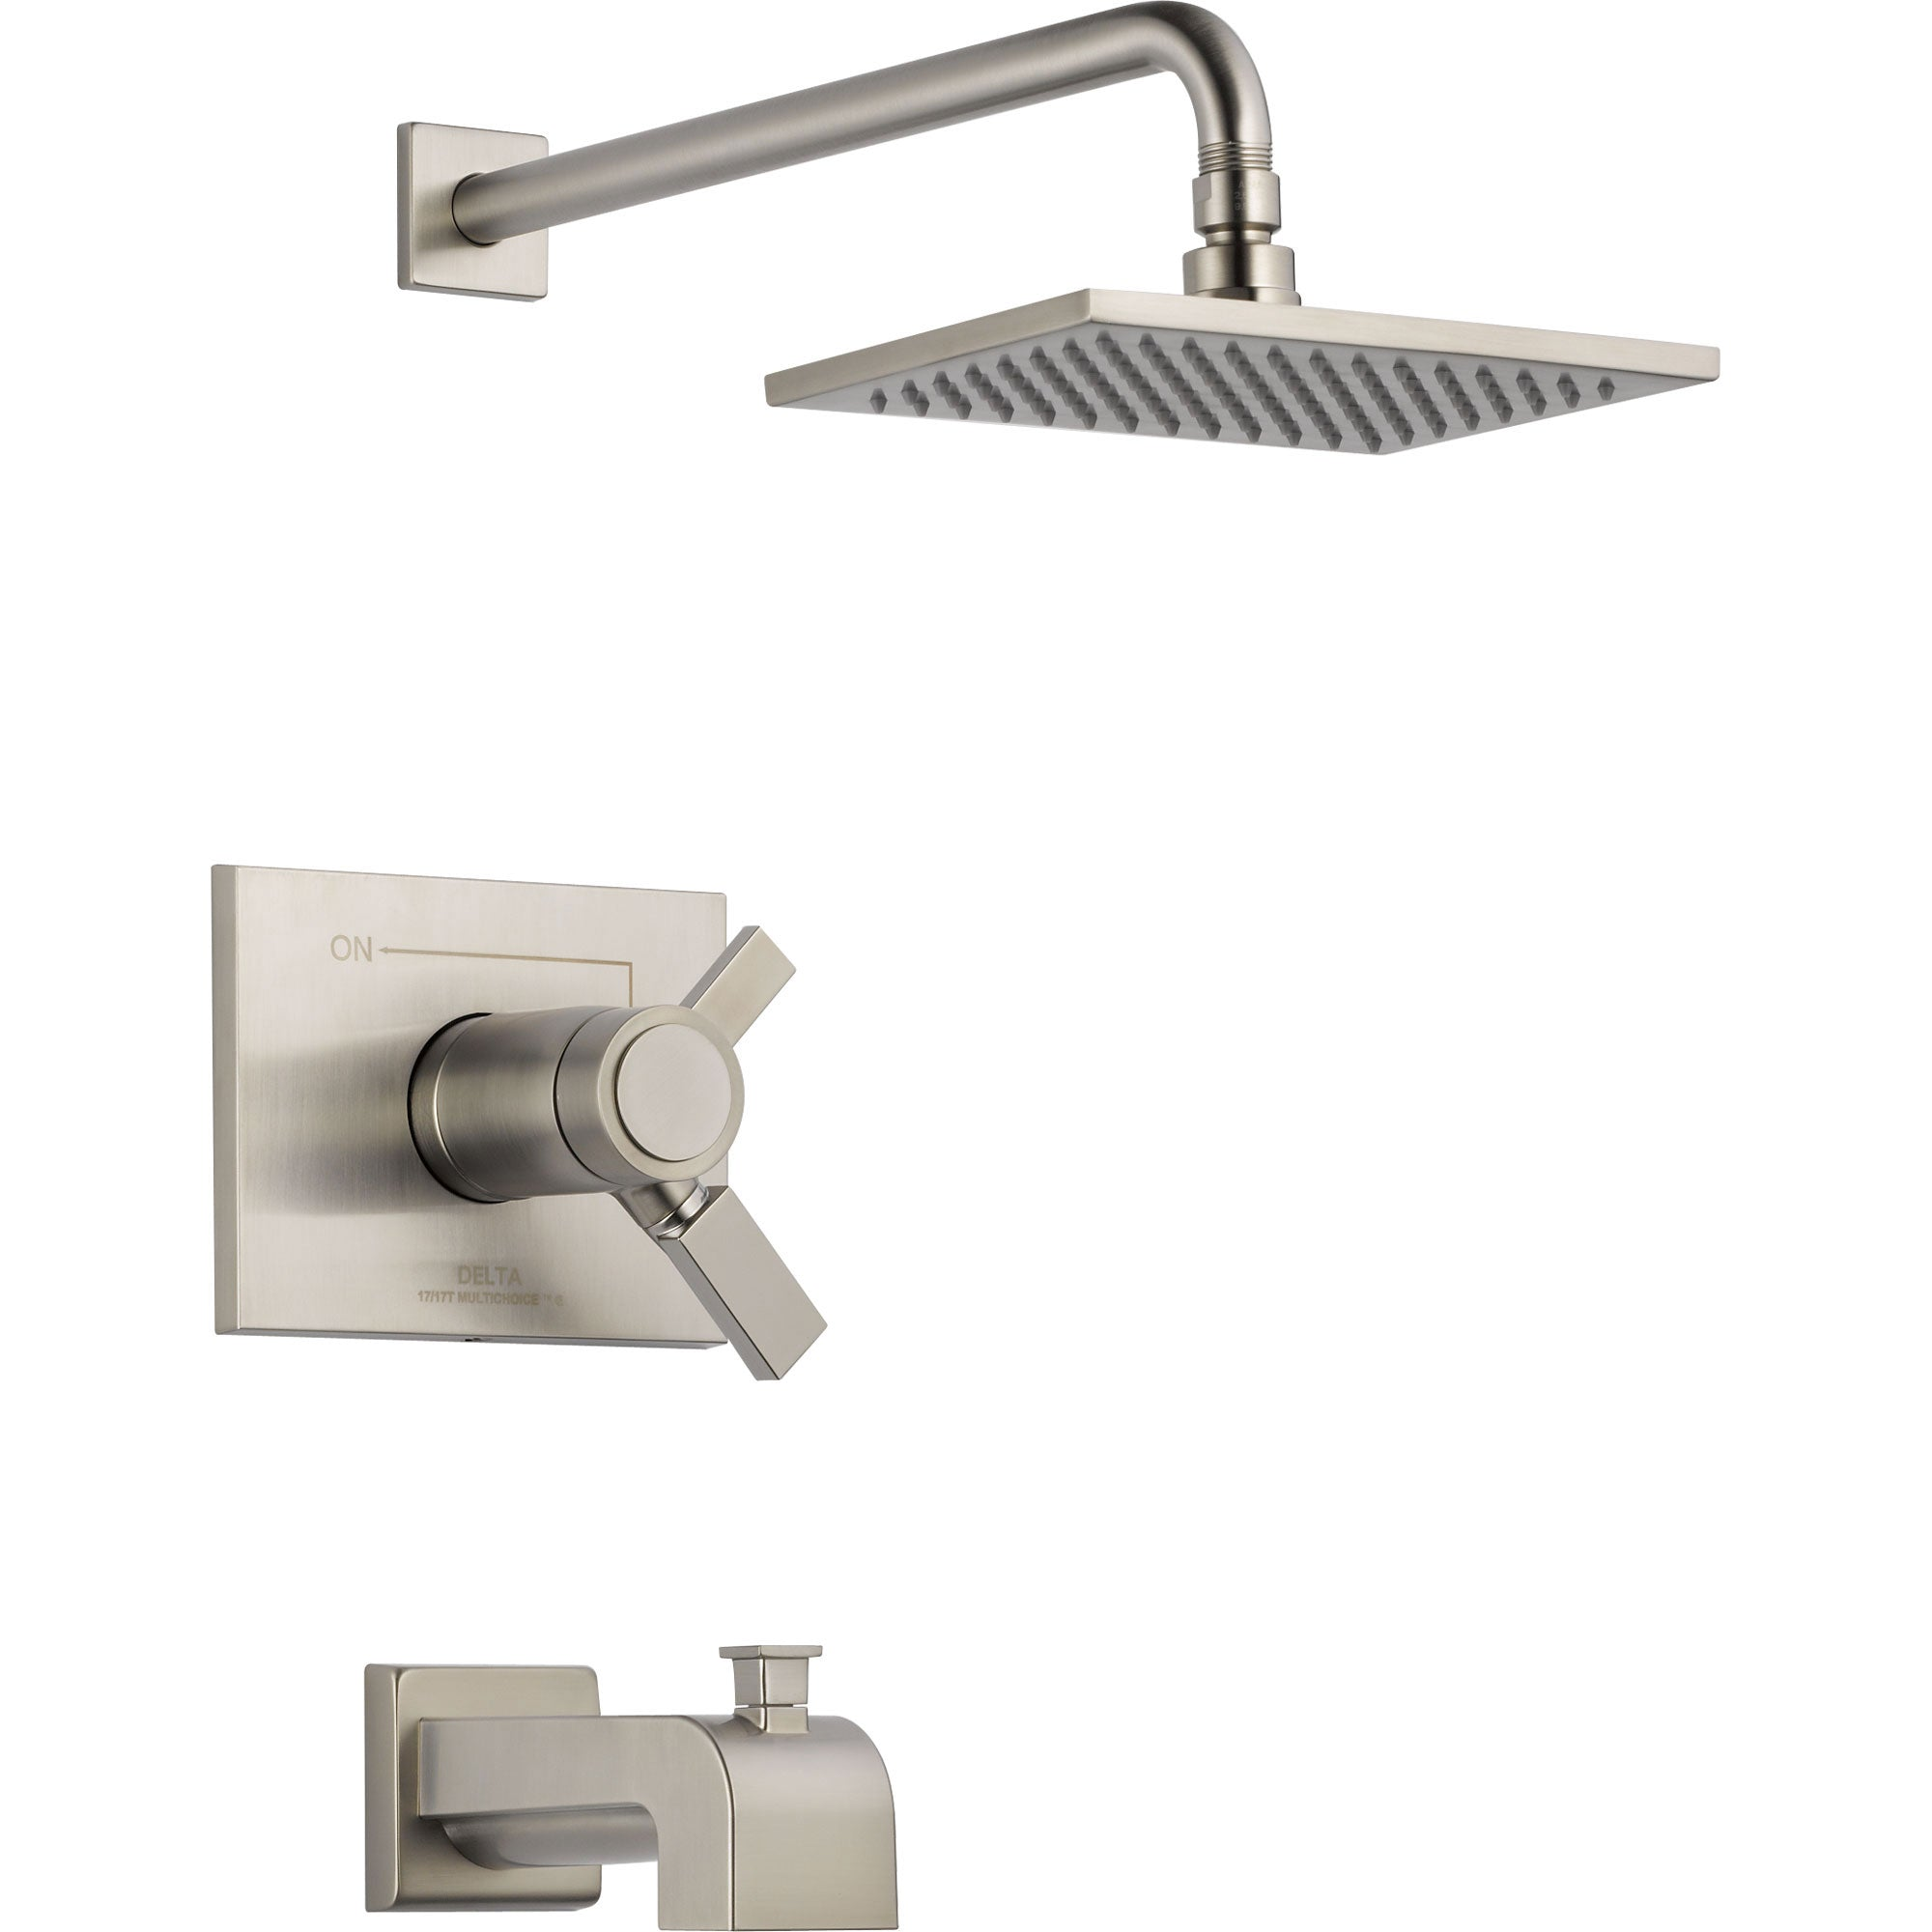 Delta Vero Thermostatic Dual Control Stainless Steel Tub & Shower Trim 521942